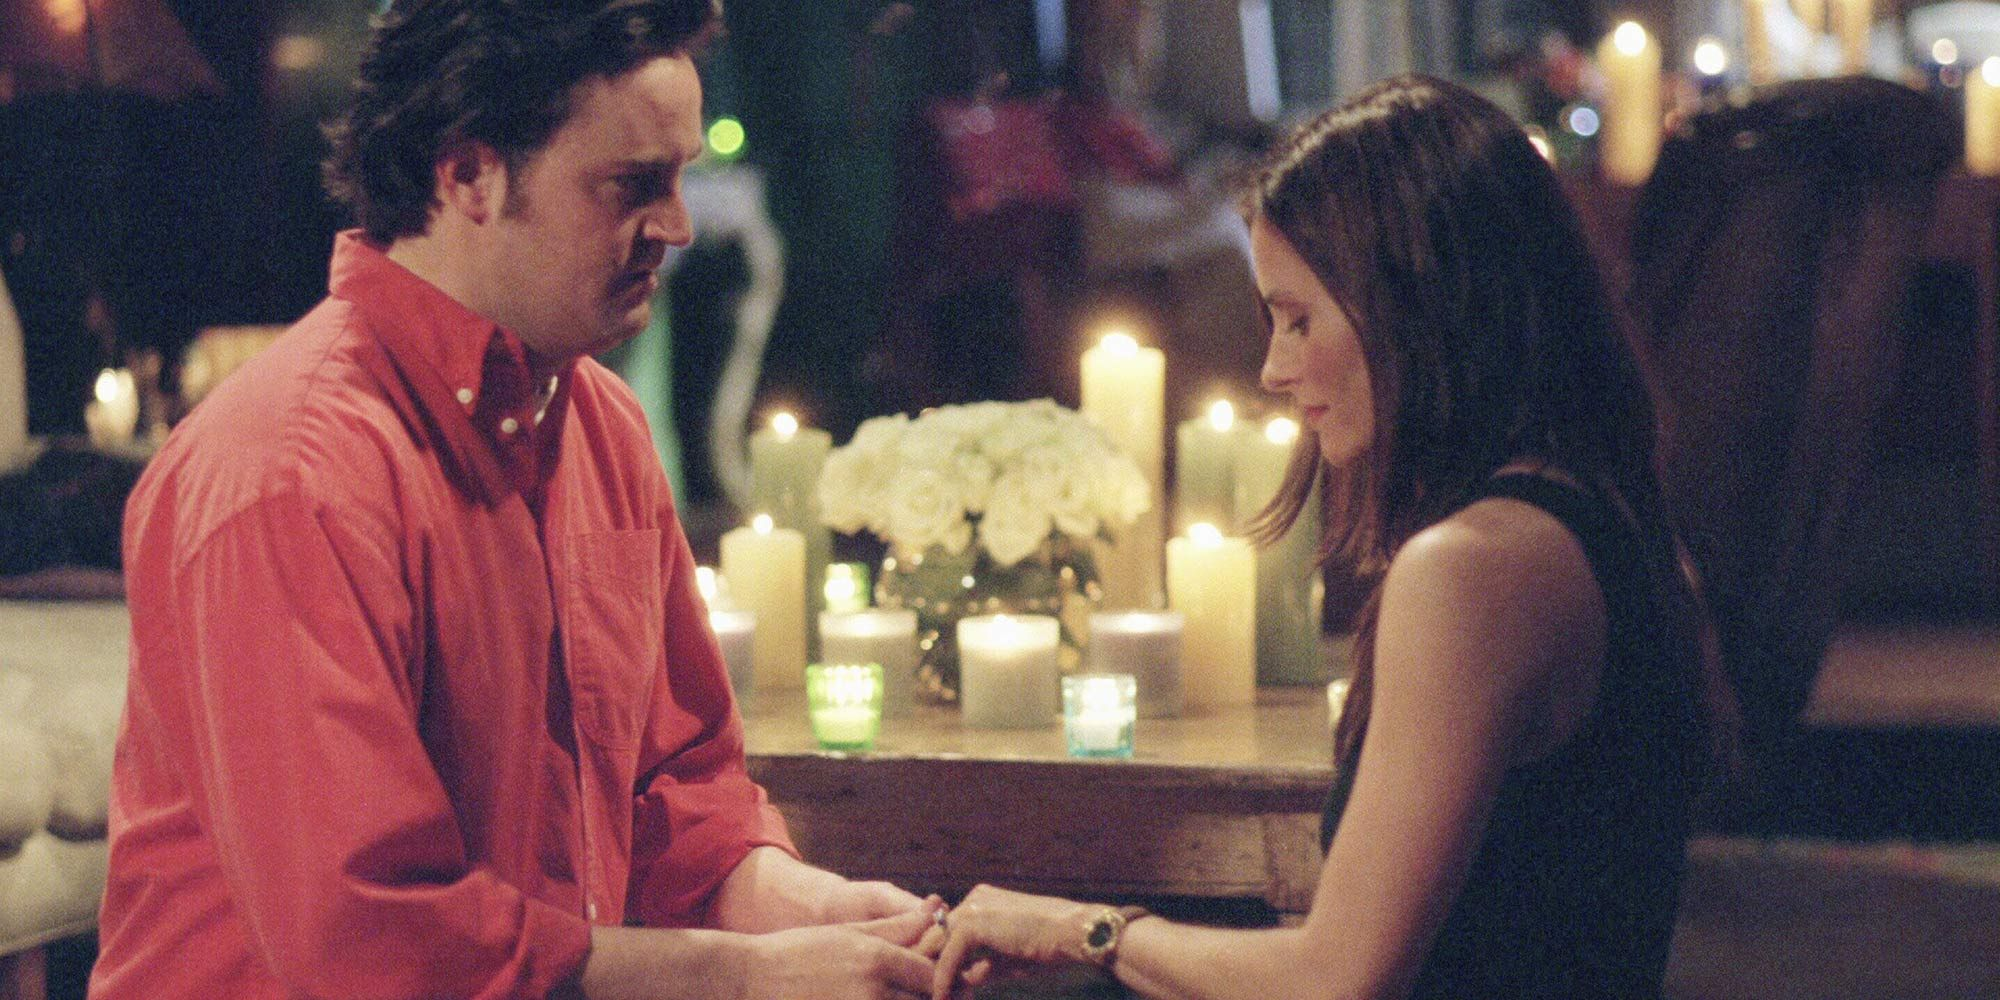 Men explain what's stopping them from proposing to their partners